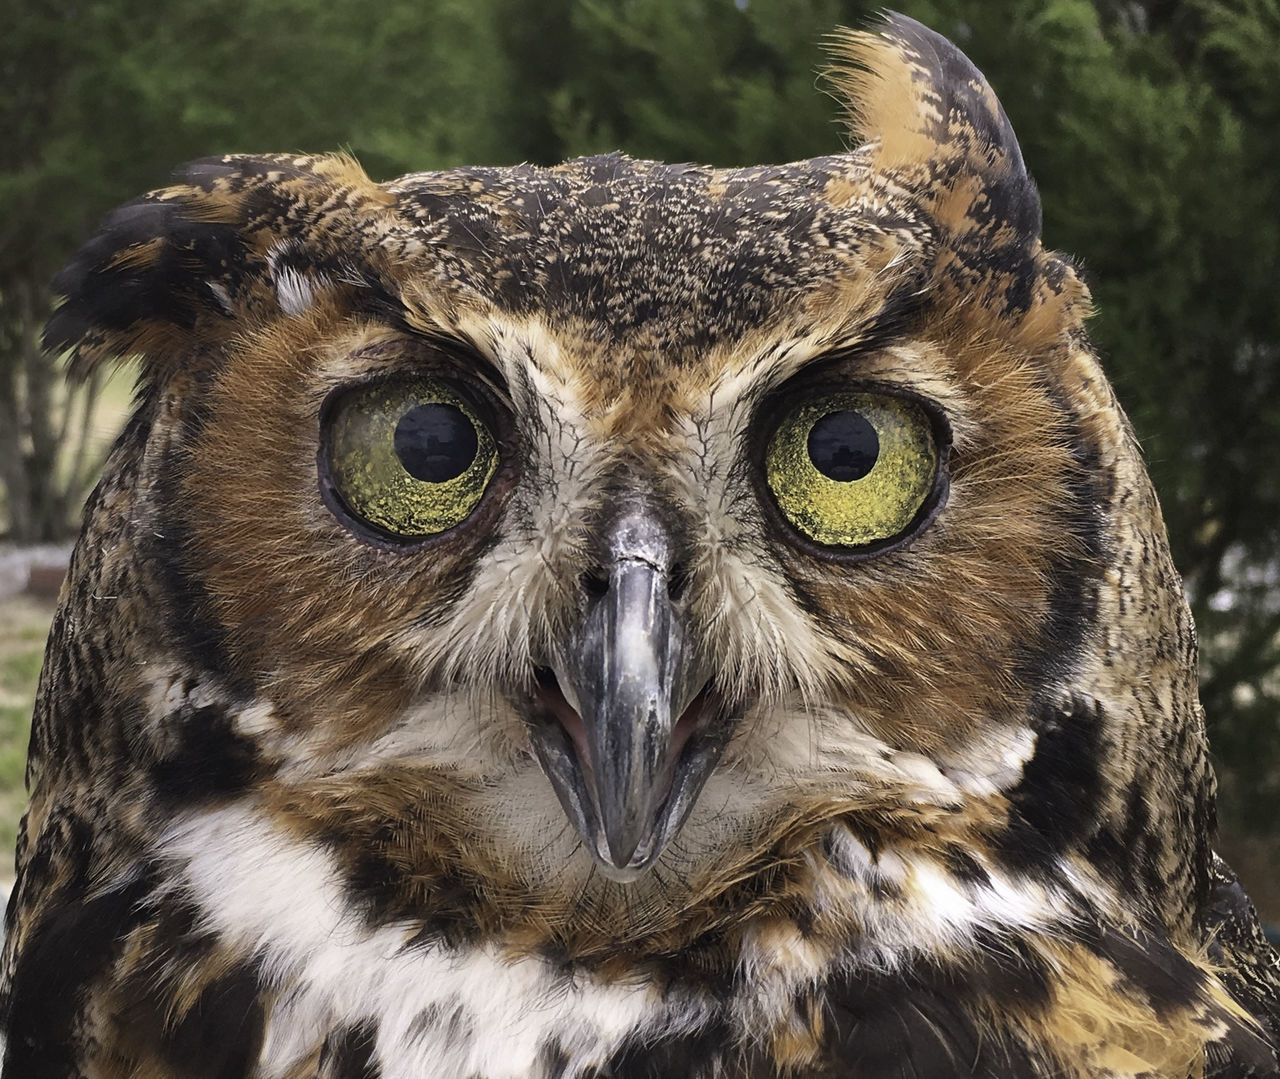 Great Horned Owl Animal Themes Animal Wildlife Animals In The Wild Beak Beauty In Nature Bird Bird Of Prey Close-up Great Horned Owl Looking At Camera Nature One Animal Owl Portrait